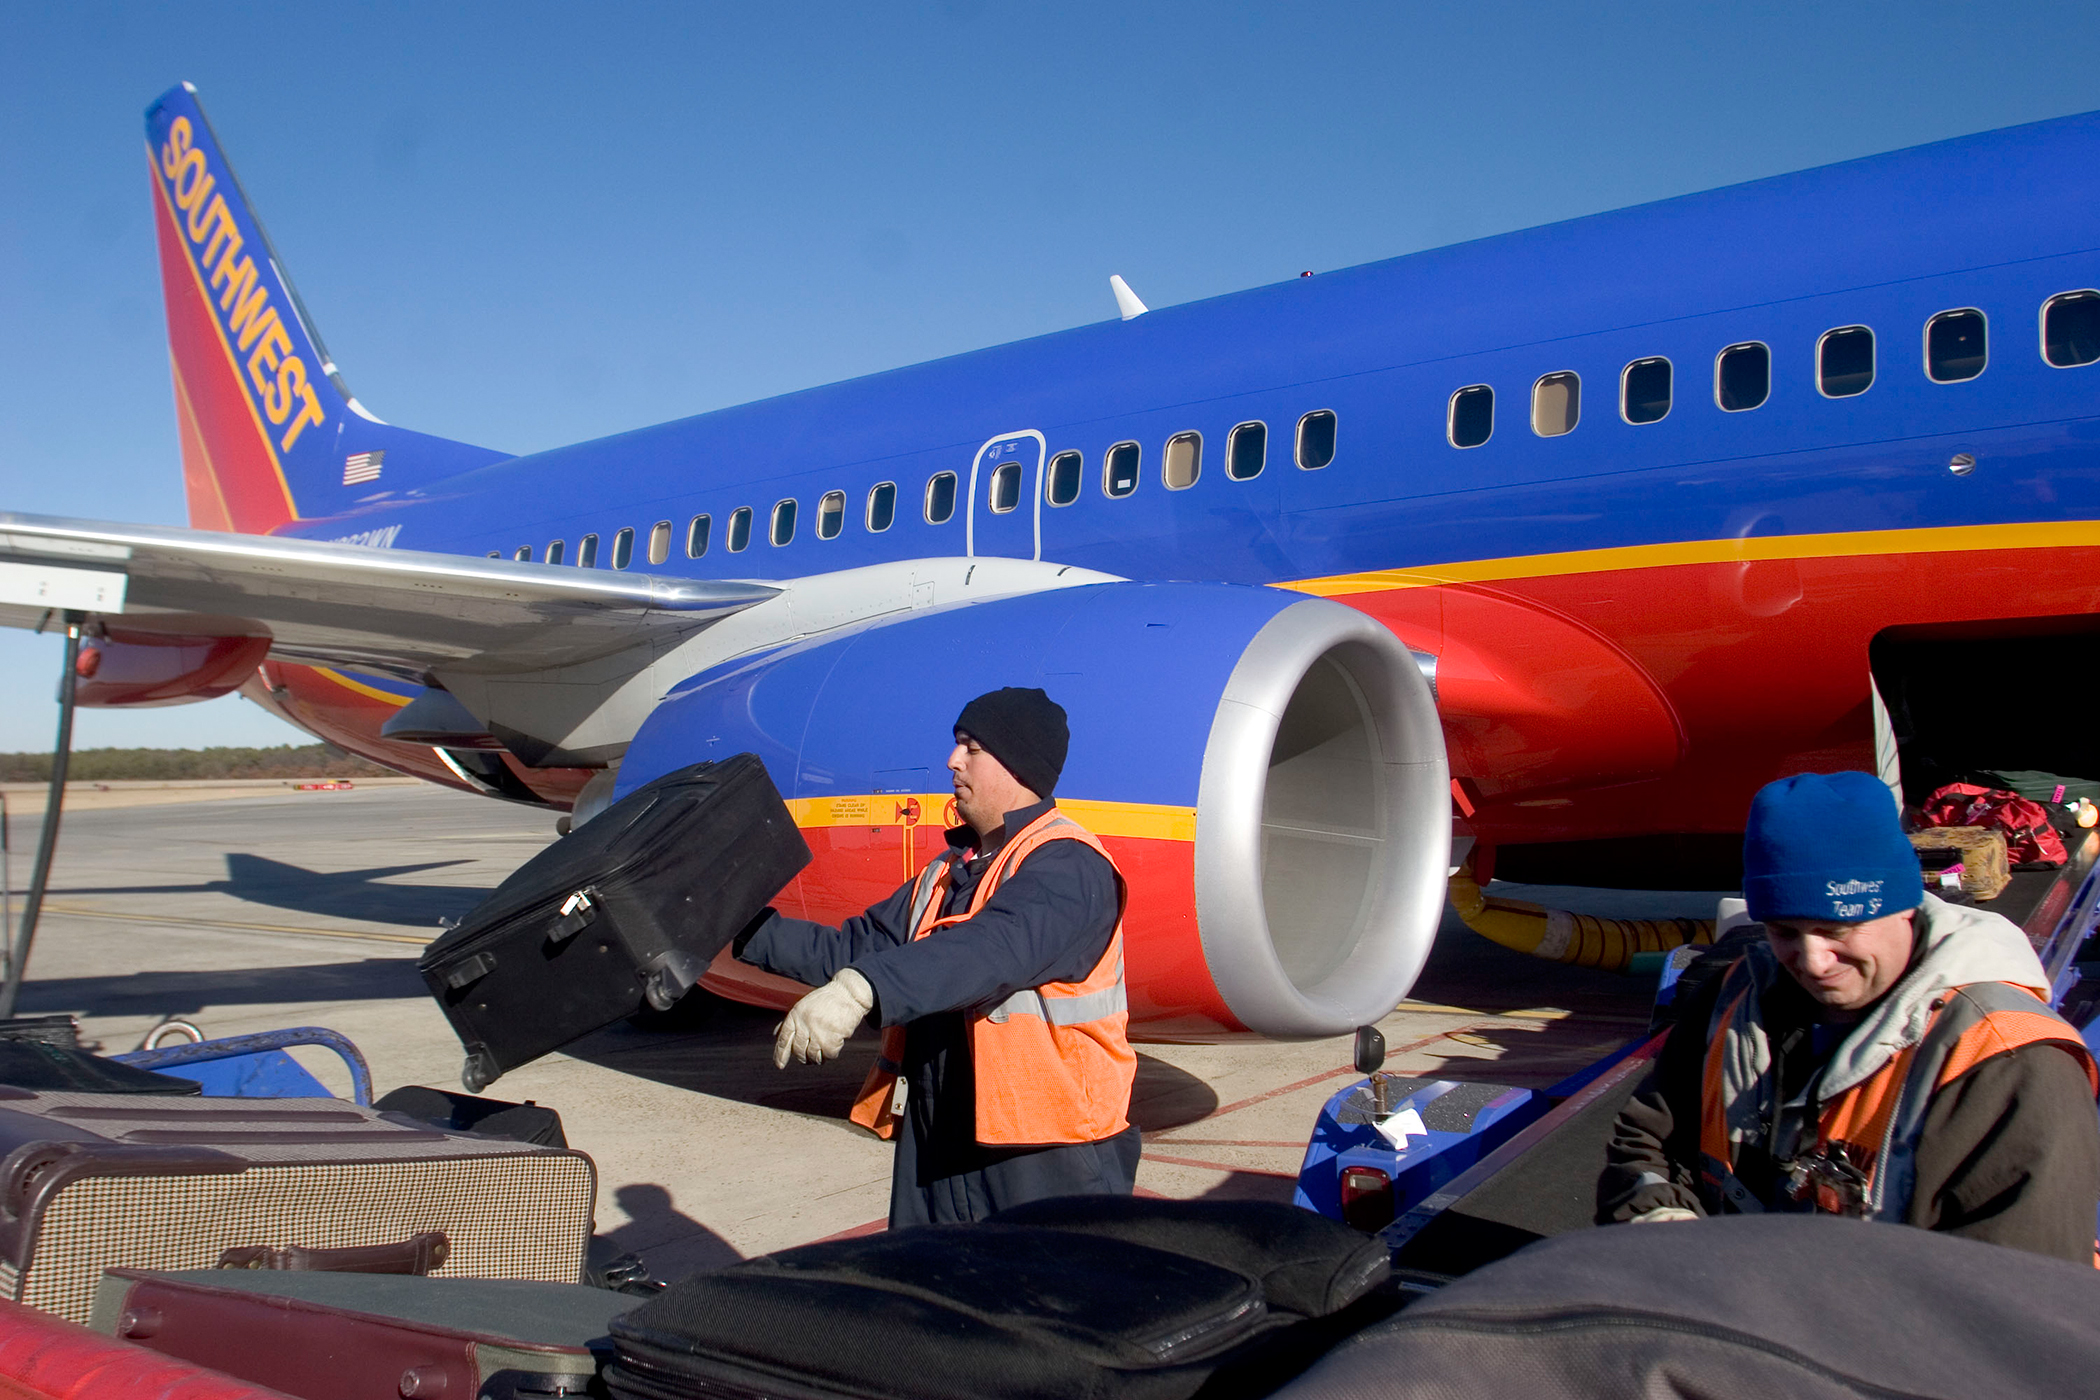 Southwest Airlines luggage handlers tossing bags